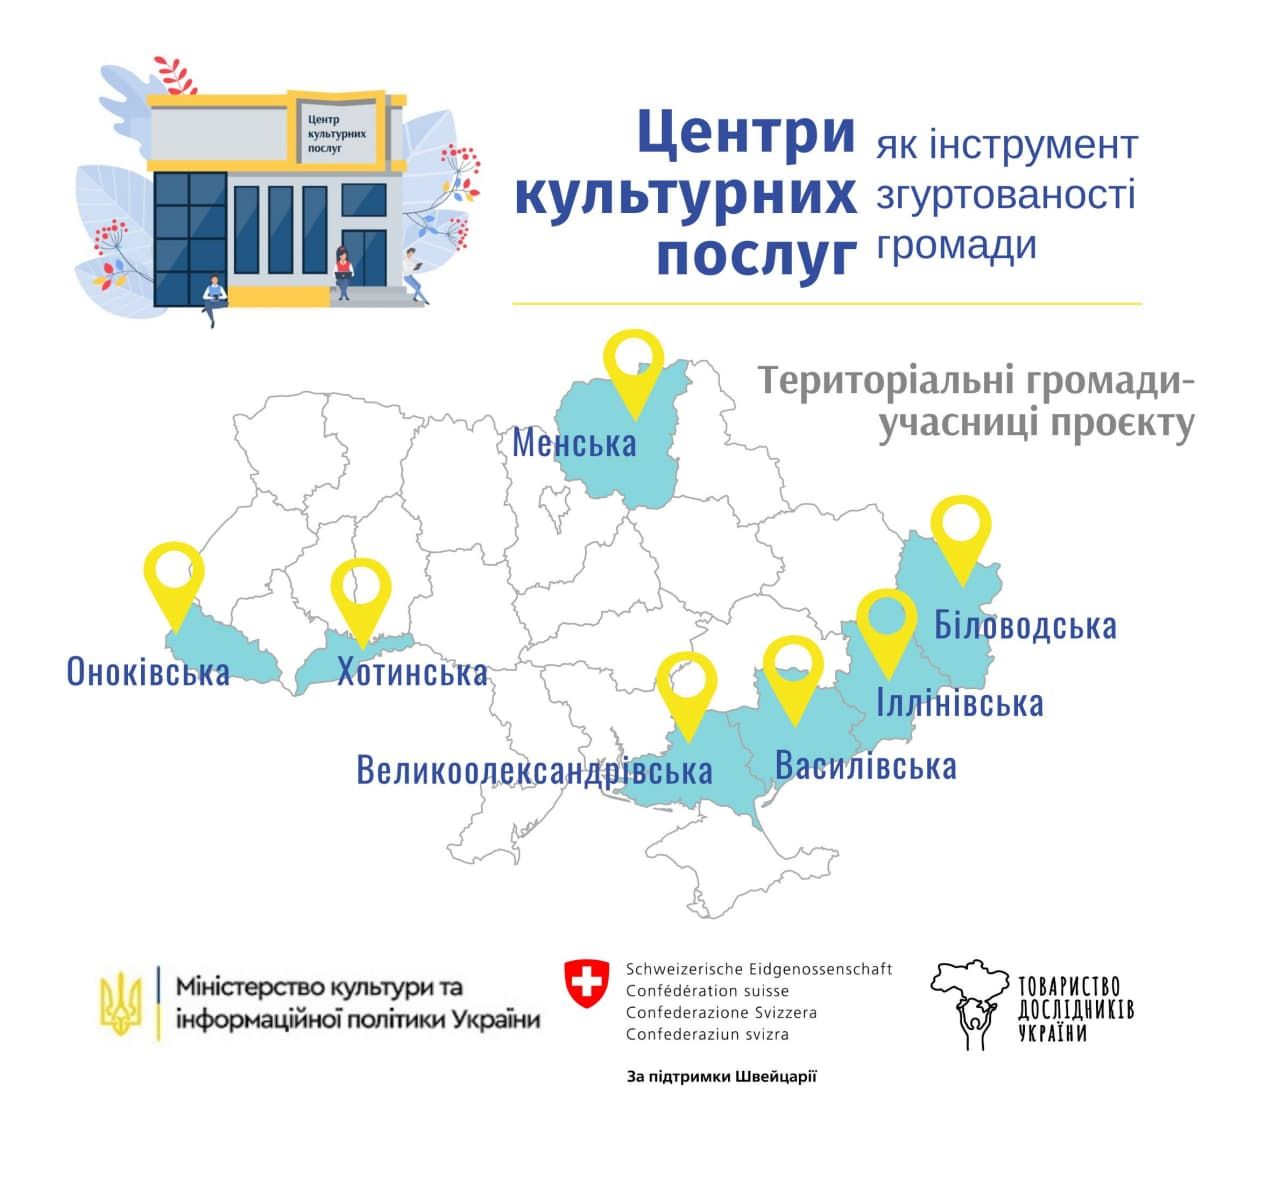 7 hromadas have been selected for the project «Cultural Services Centres as a hromada cohesion tool»